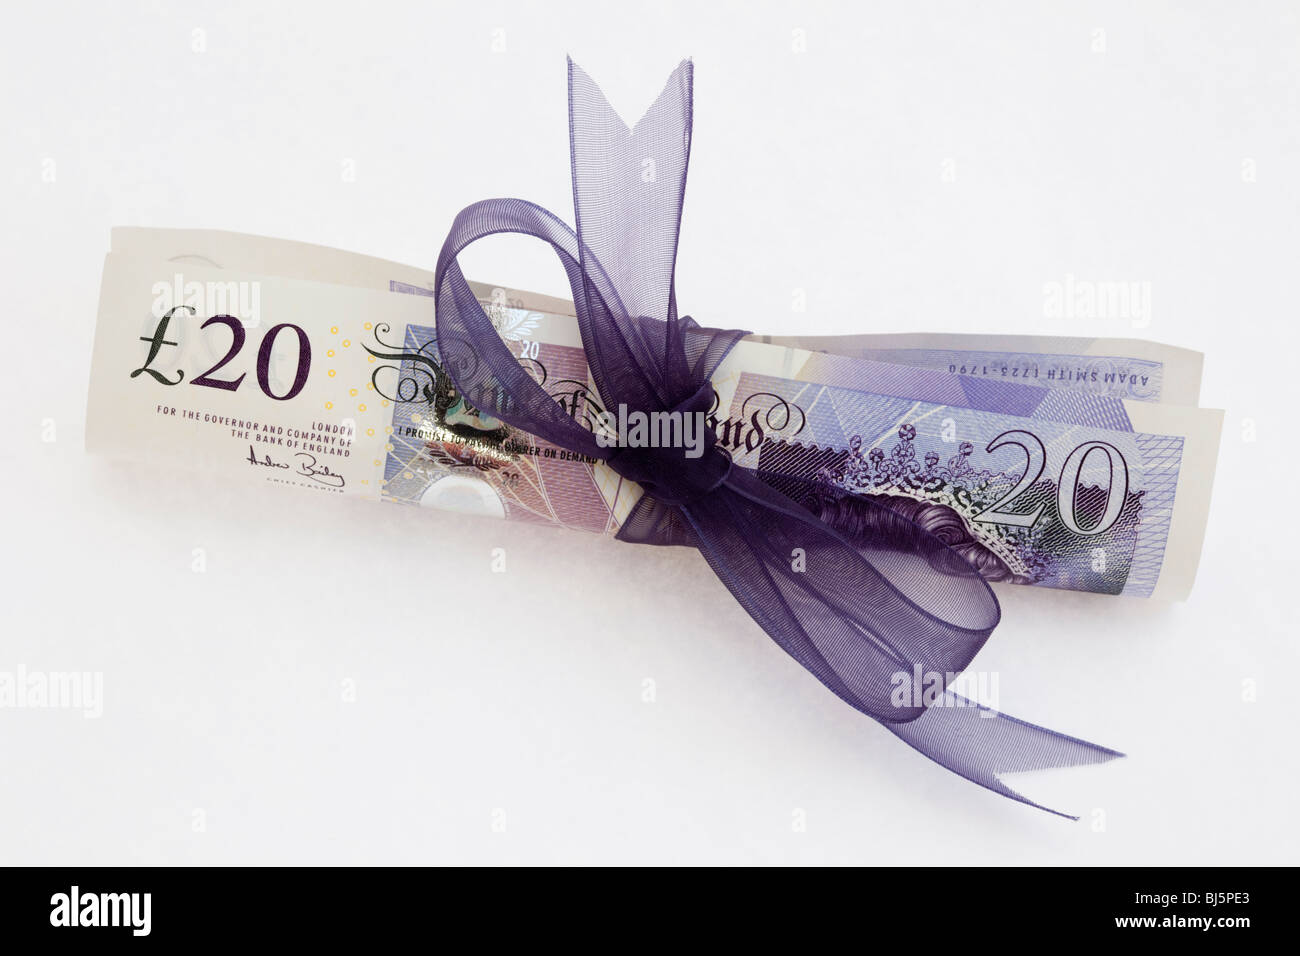 Rolled up sterling £20 pound note GBP tied up with a purple ribbon on a plain white background. Giving give - Stock Image